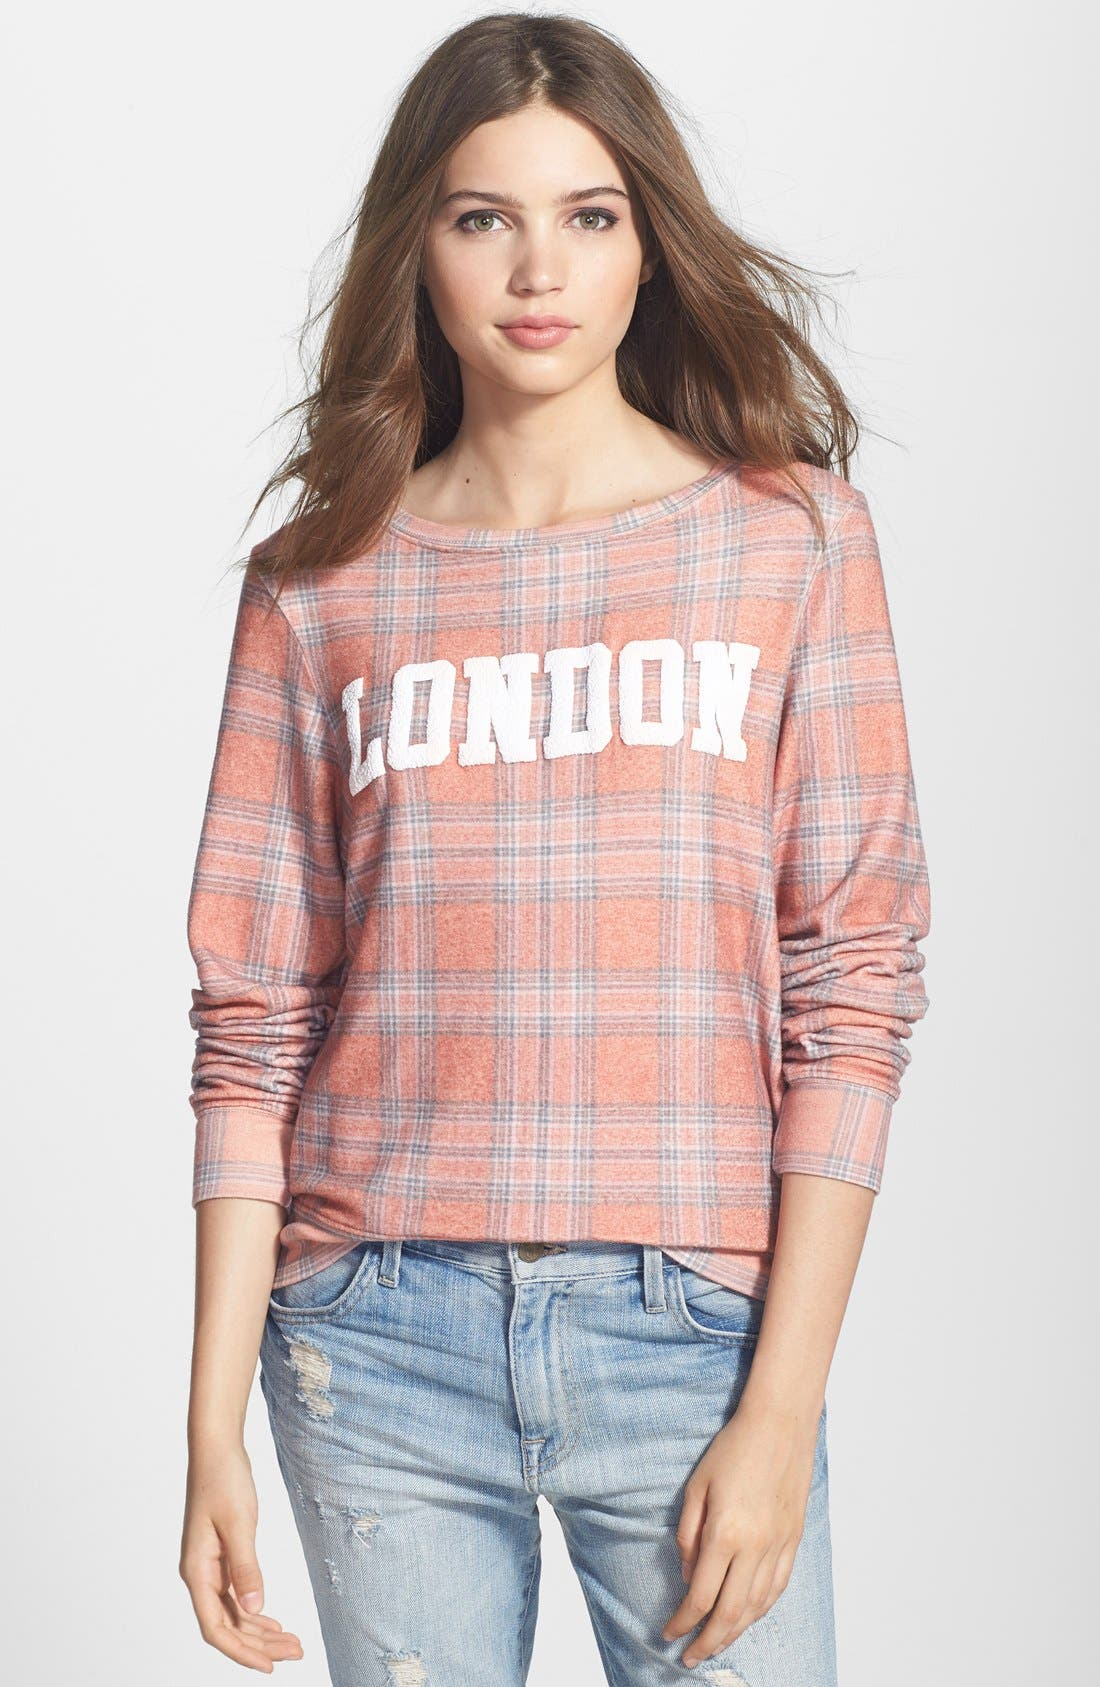 Alternate Image 1 Selected - Wildfox 'London' Plaid Pullover